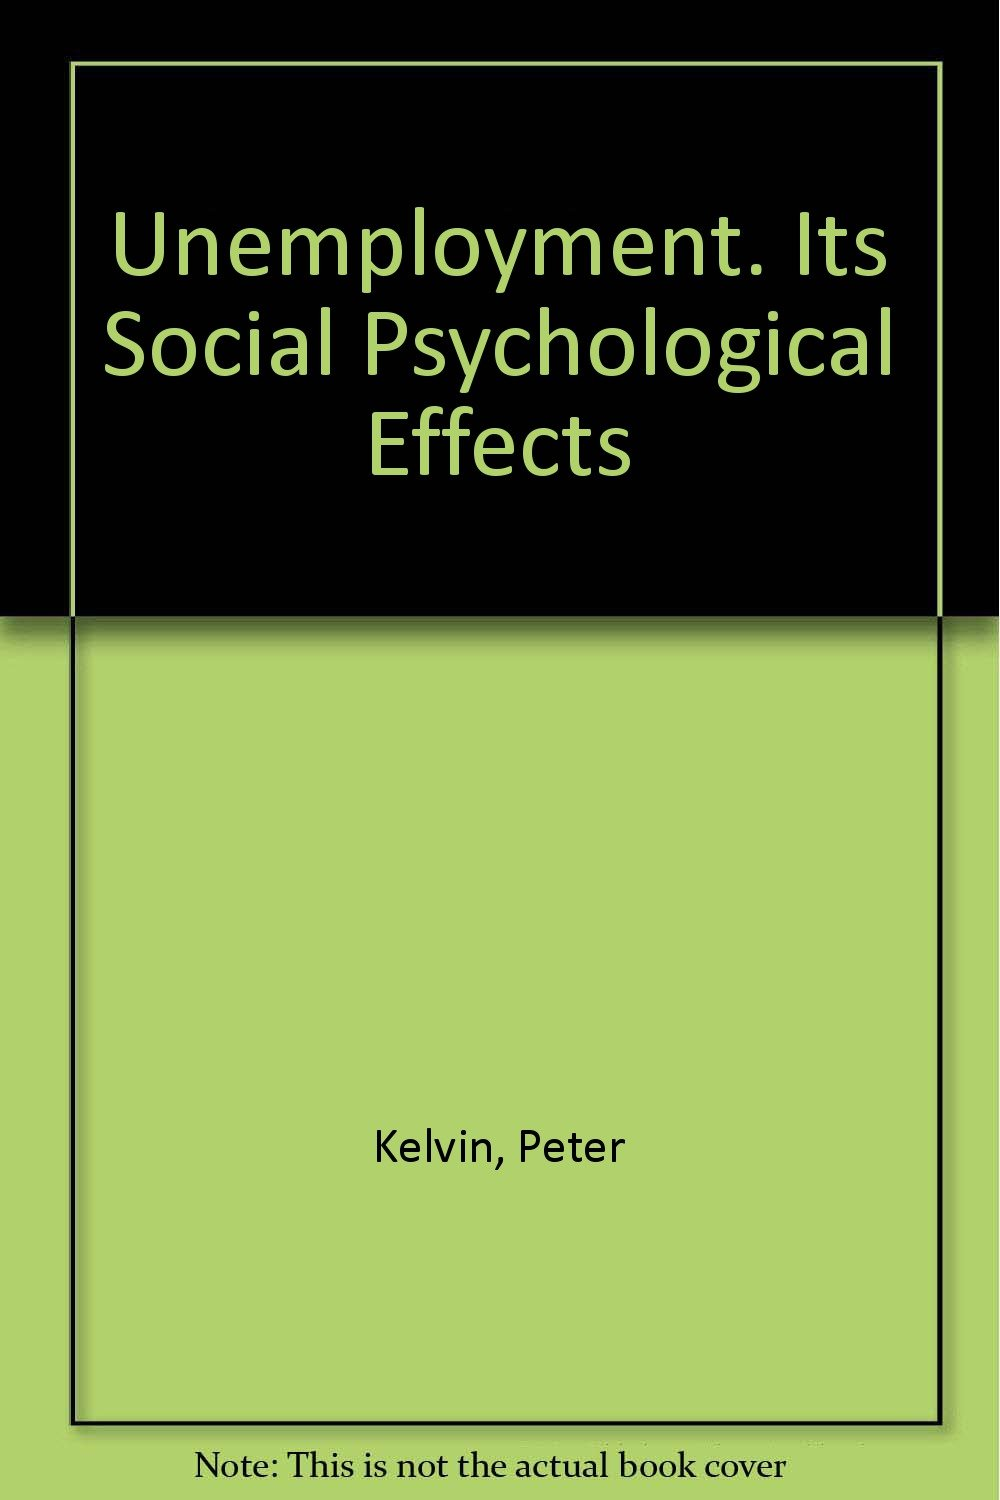 unemployment its social psychological effects amazon co uk unemployment its social psychological effects amazon co uk peter kelvin joanna e jarret 9782735101115 books